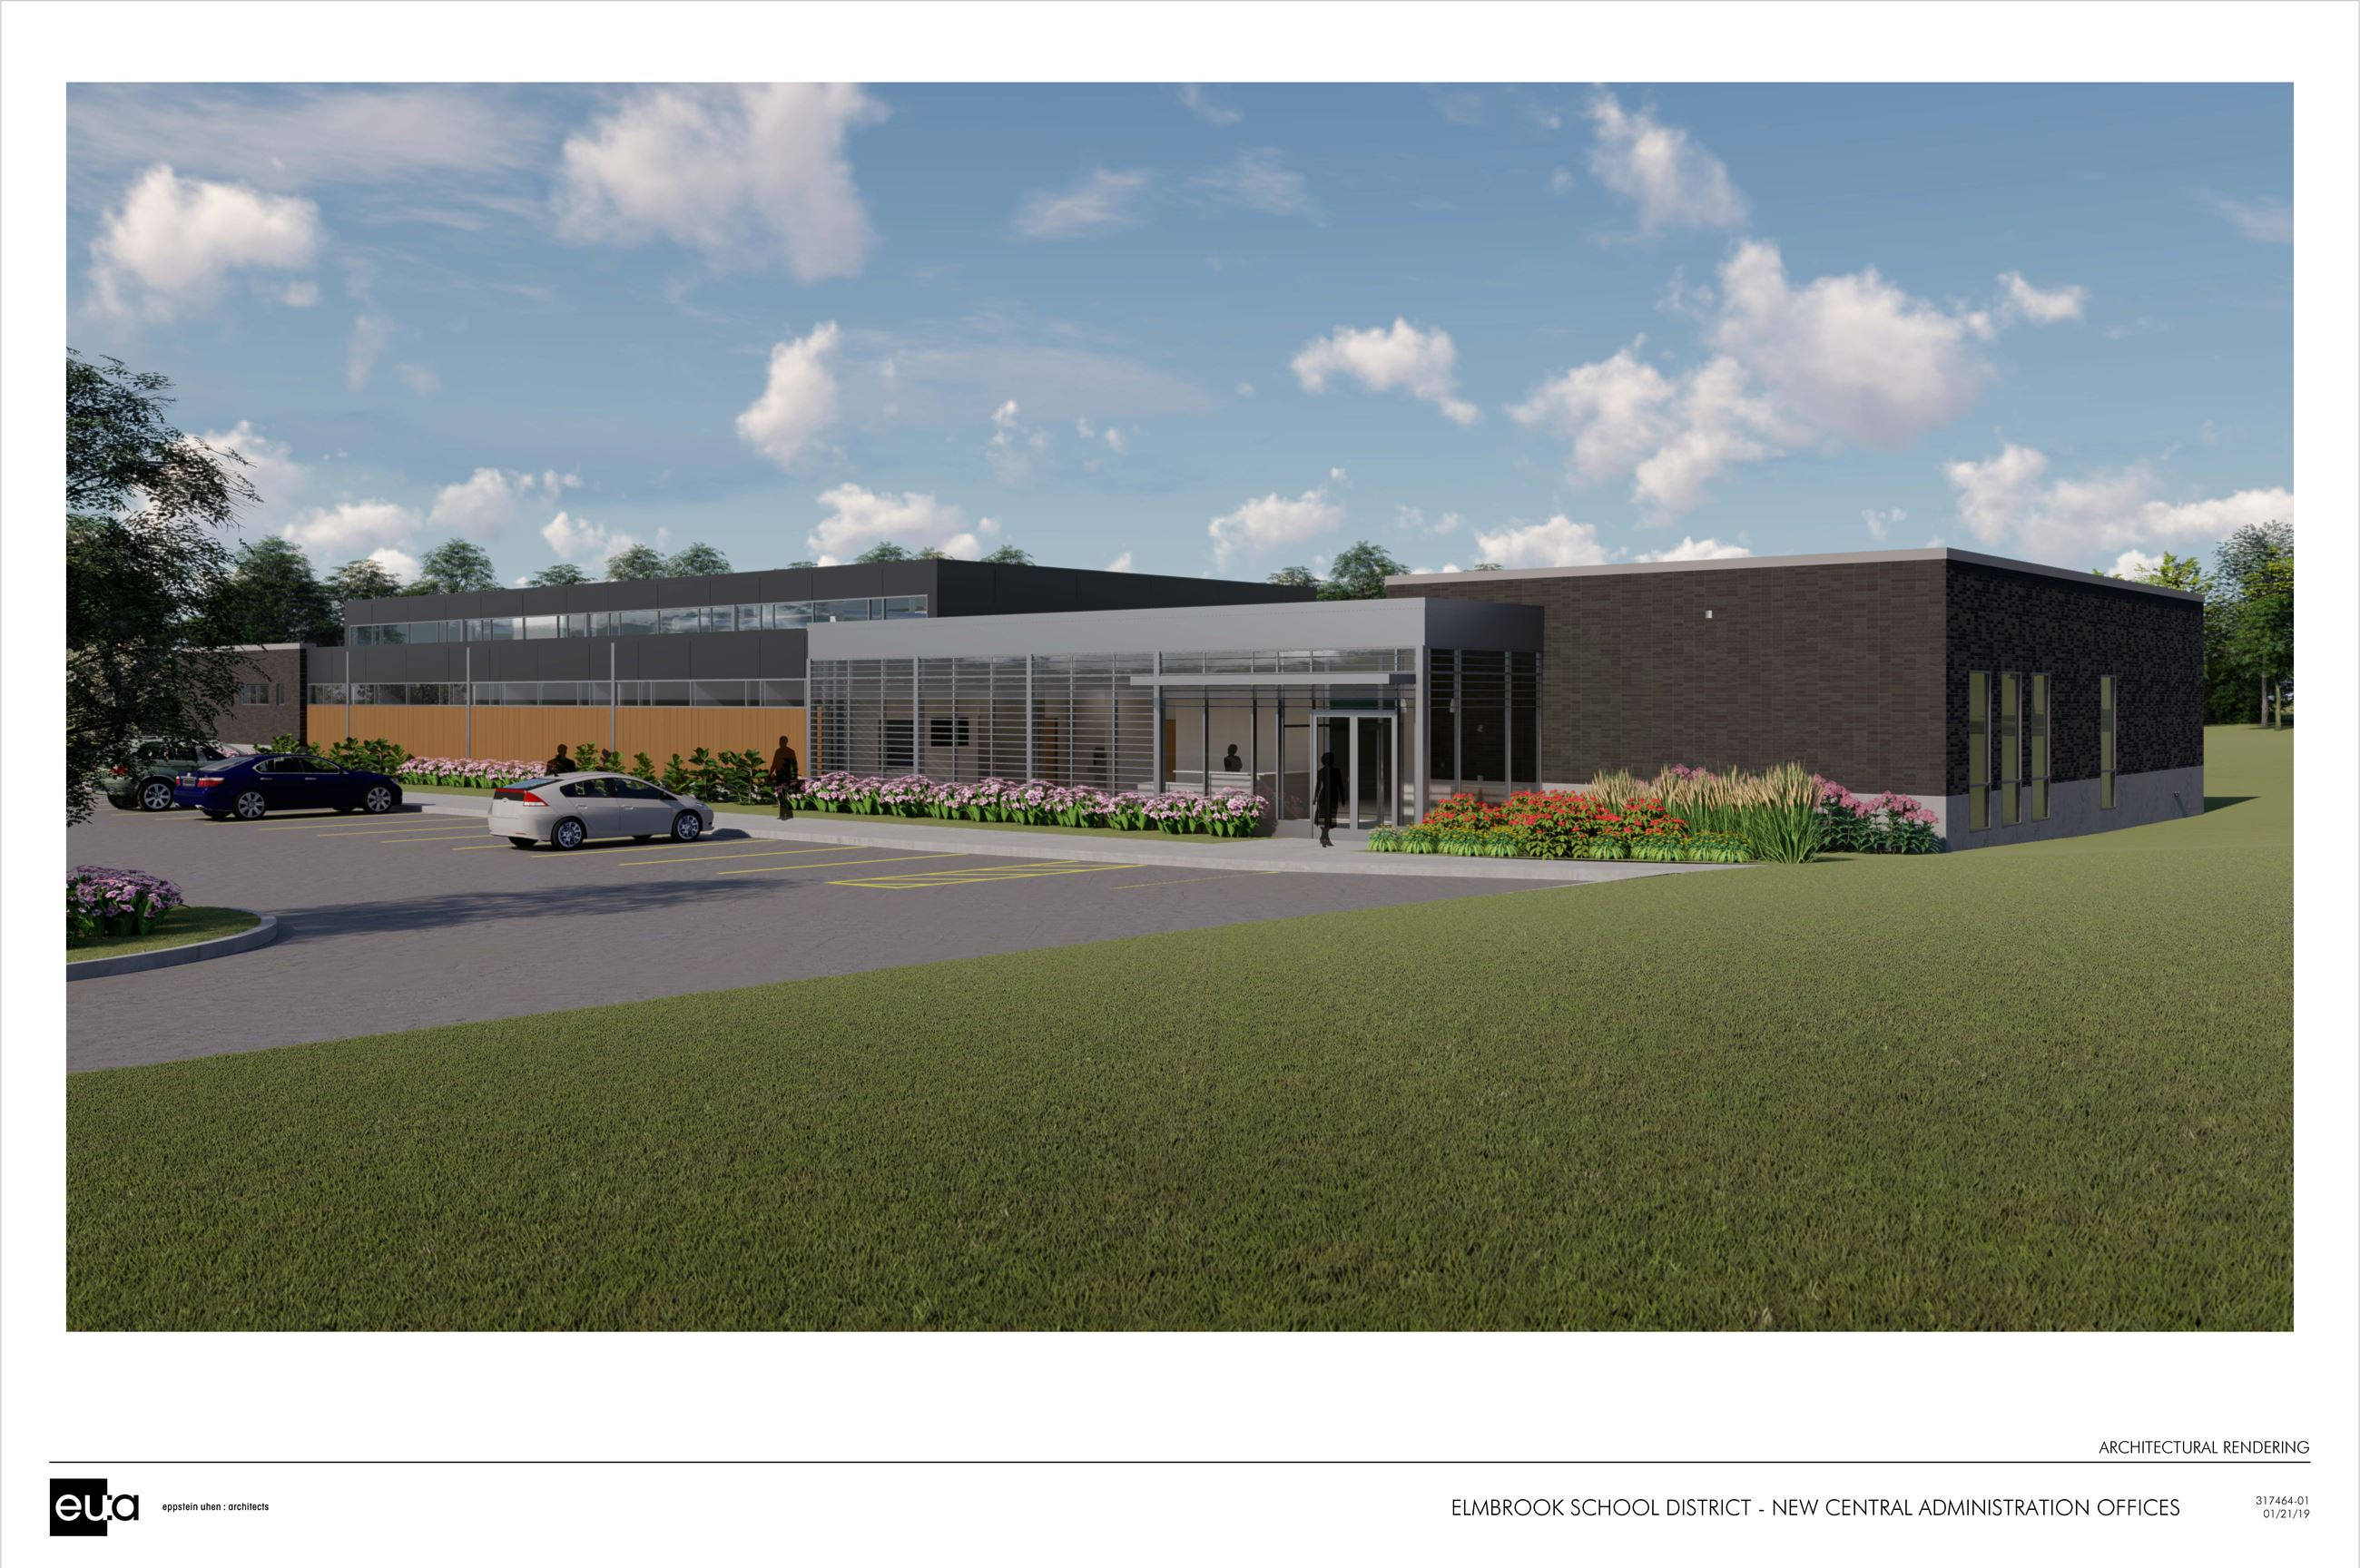 Elmbrook School District Administrative Building Rendering